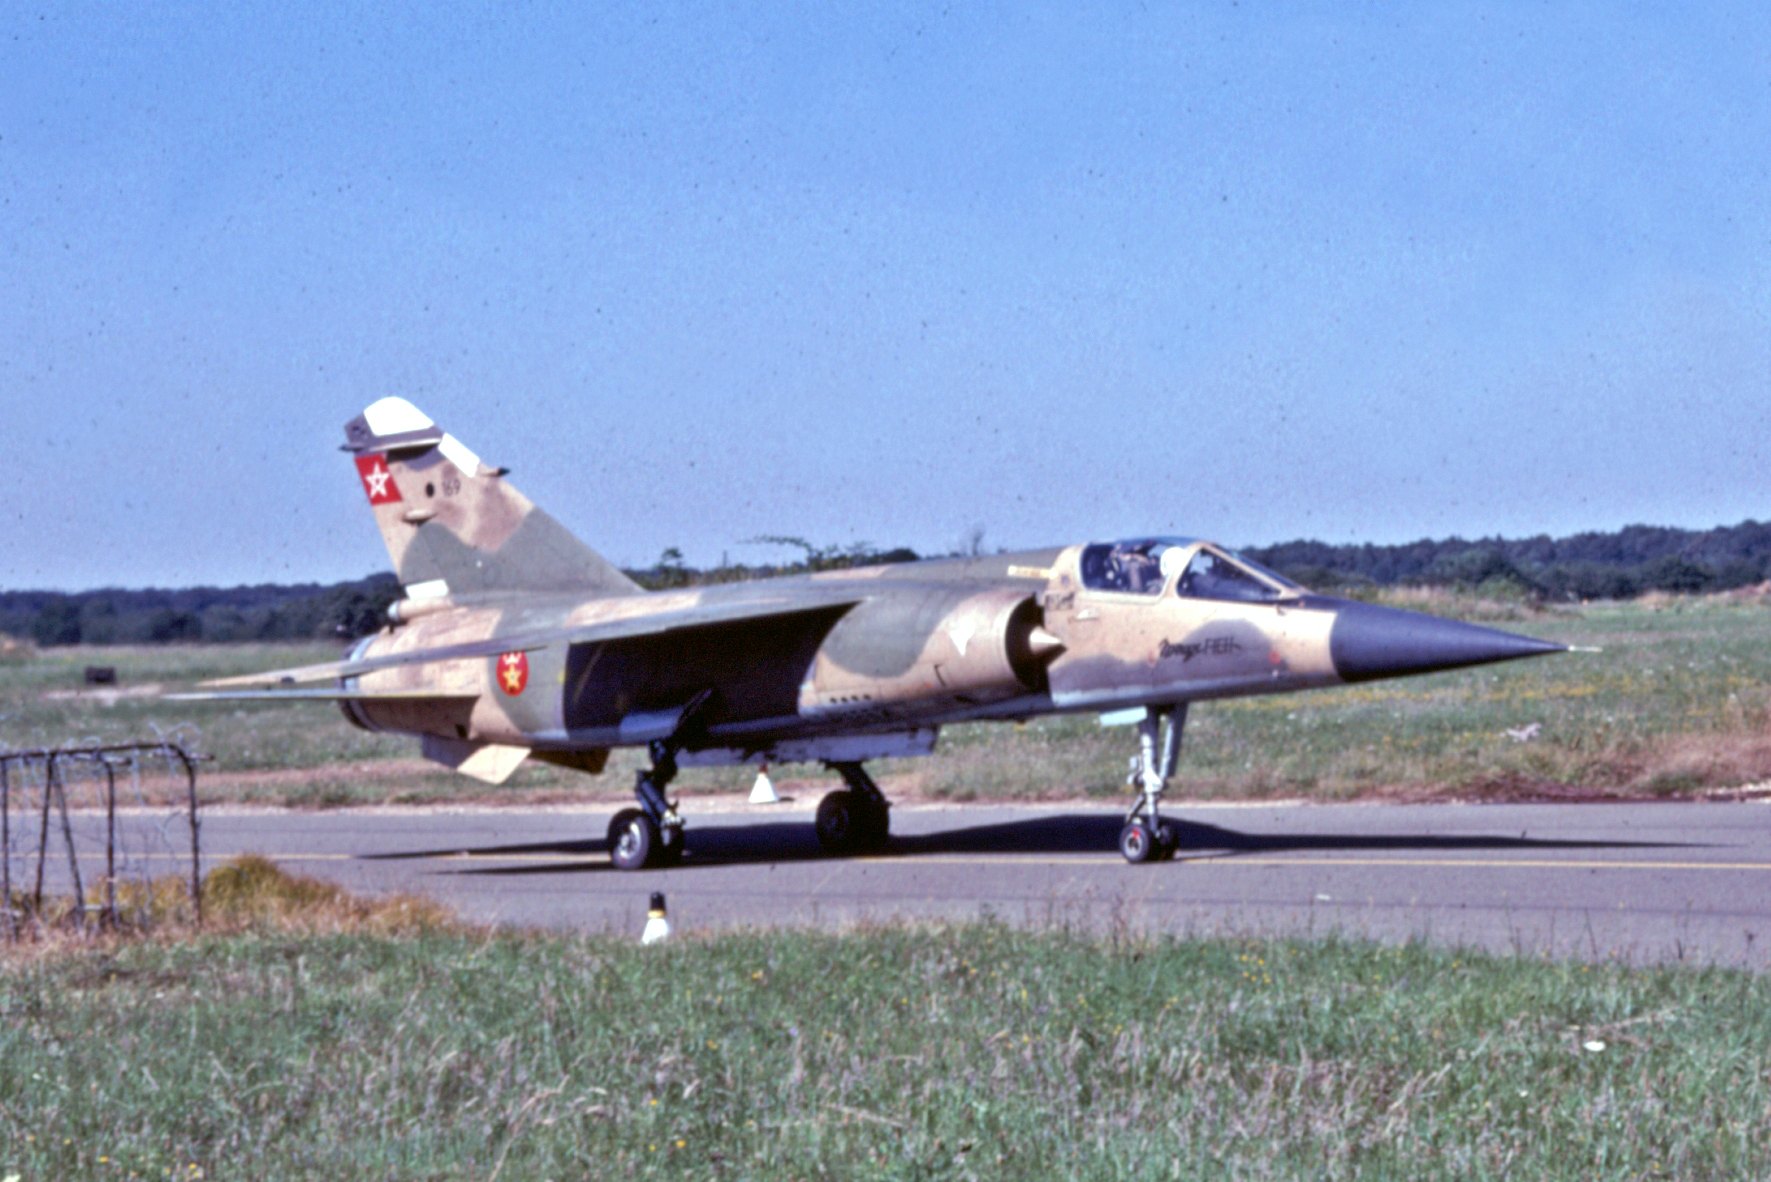 FRA: Photos Mirage F1 - Page 15 31436945817_60725d0597_o